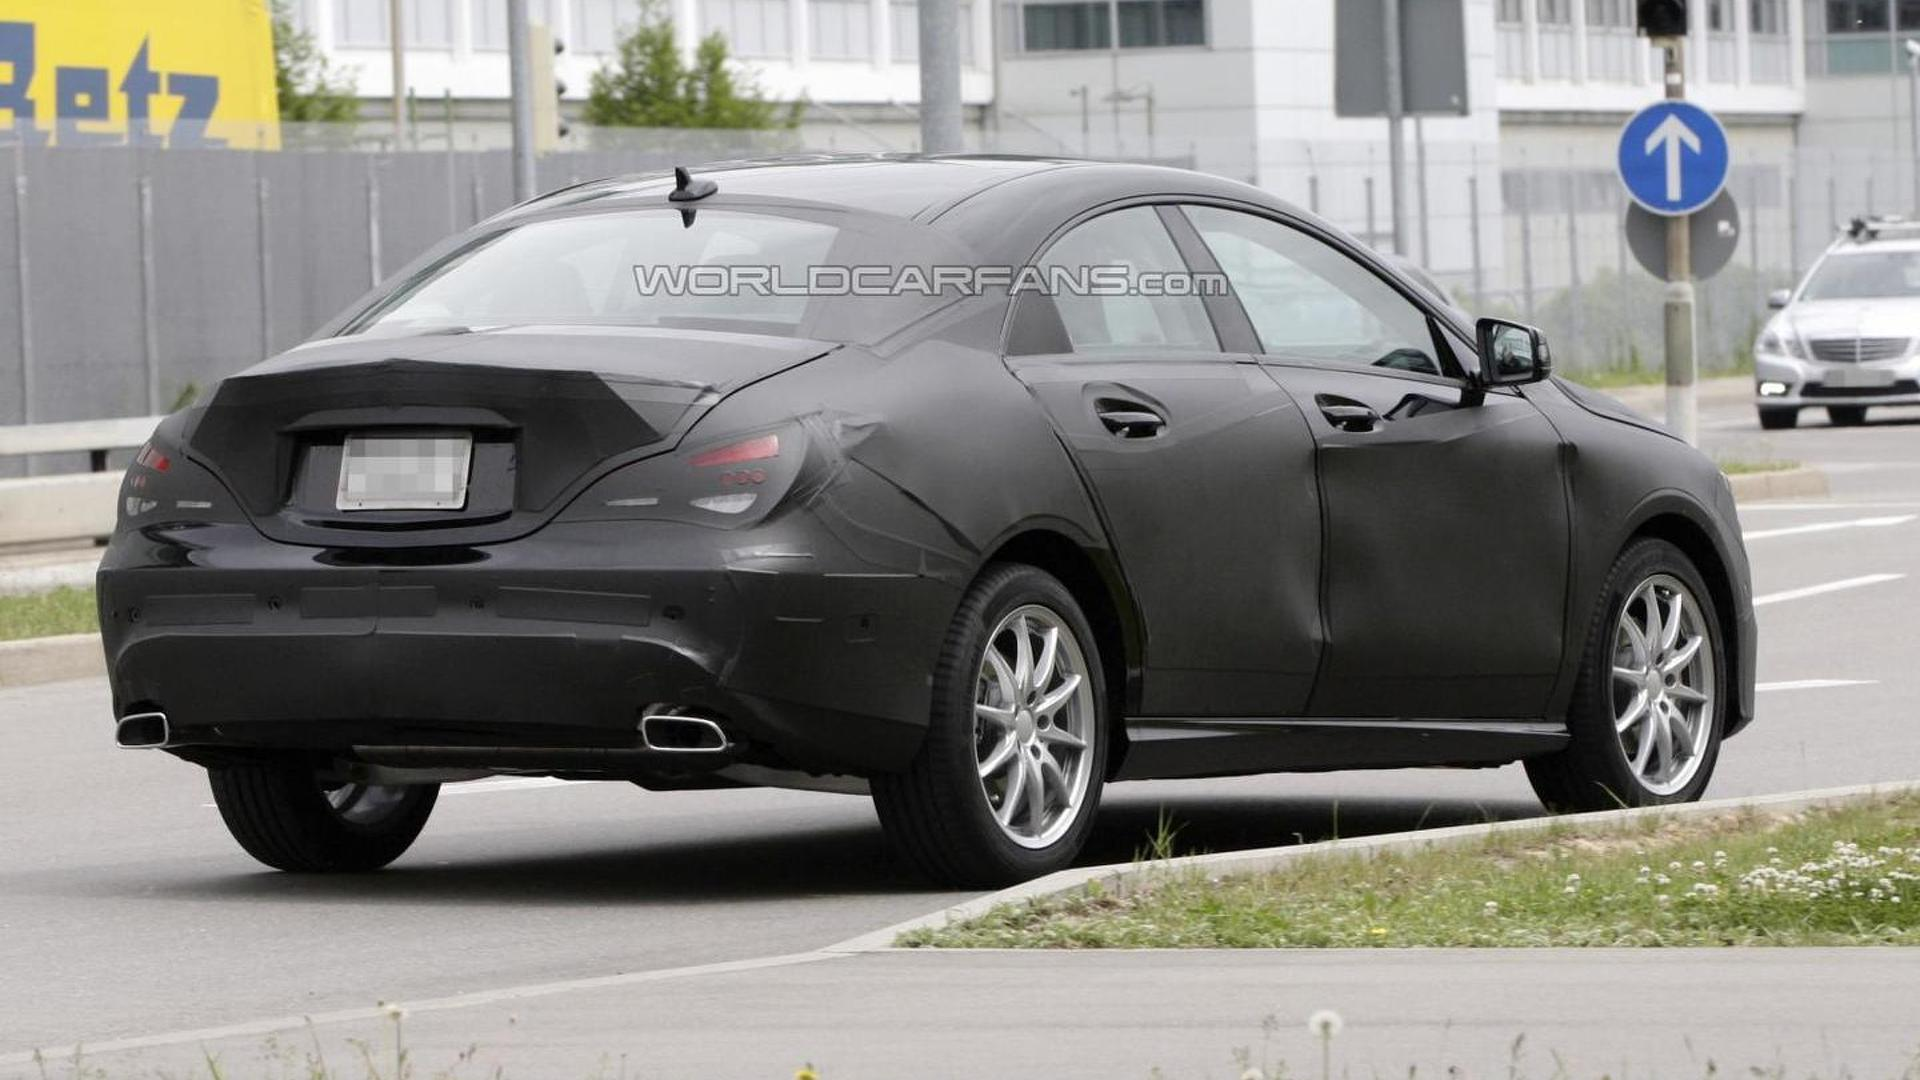 Mercedes CLA to debut in Detroit